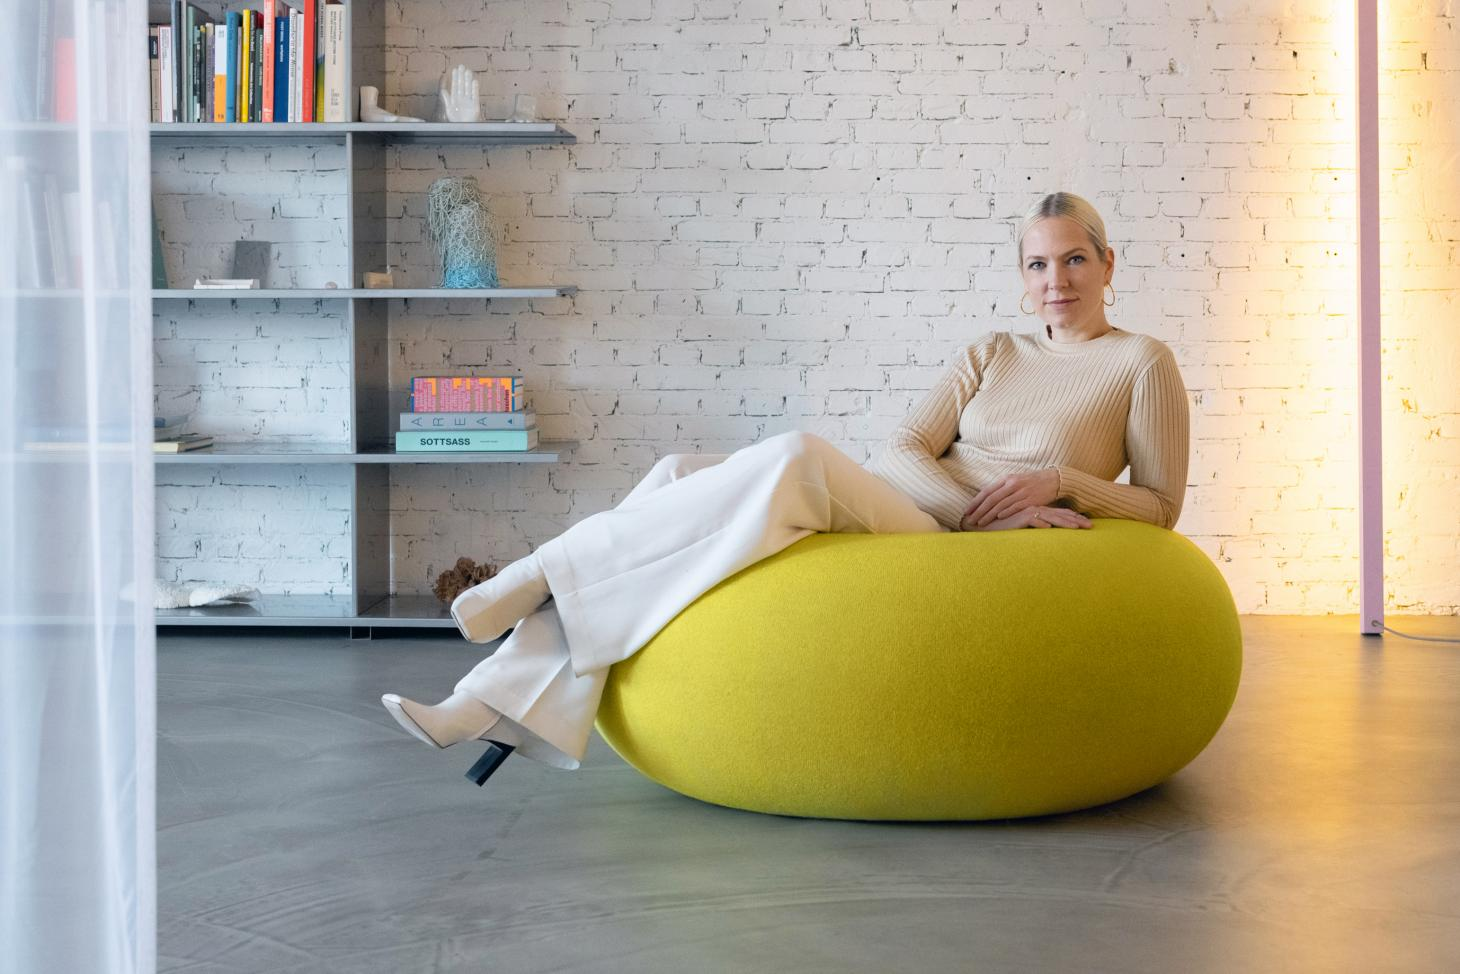 A portrait of Sabine Marcelis sitting on her yellow donut shaped Boa Pouf for Hem at her home in Rotterdam